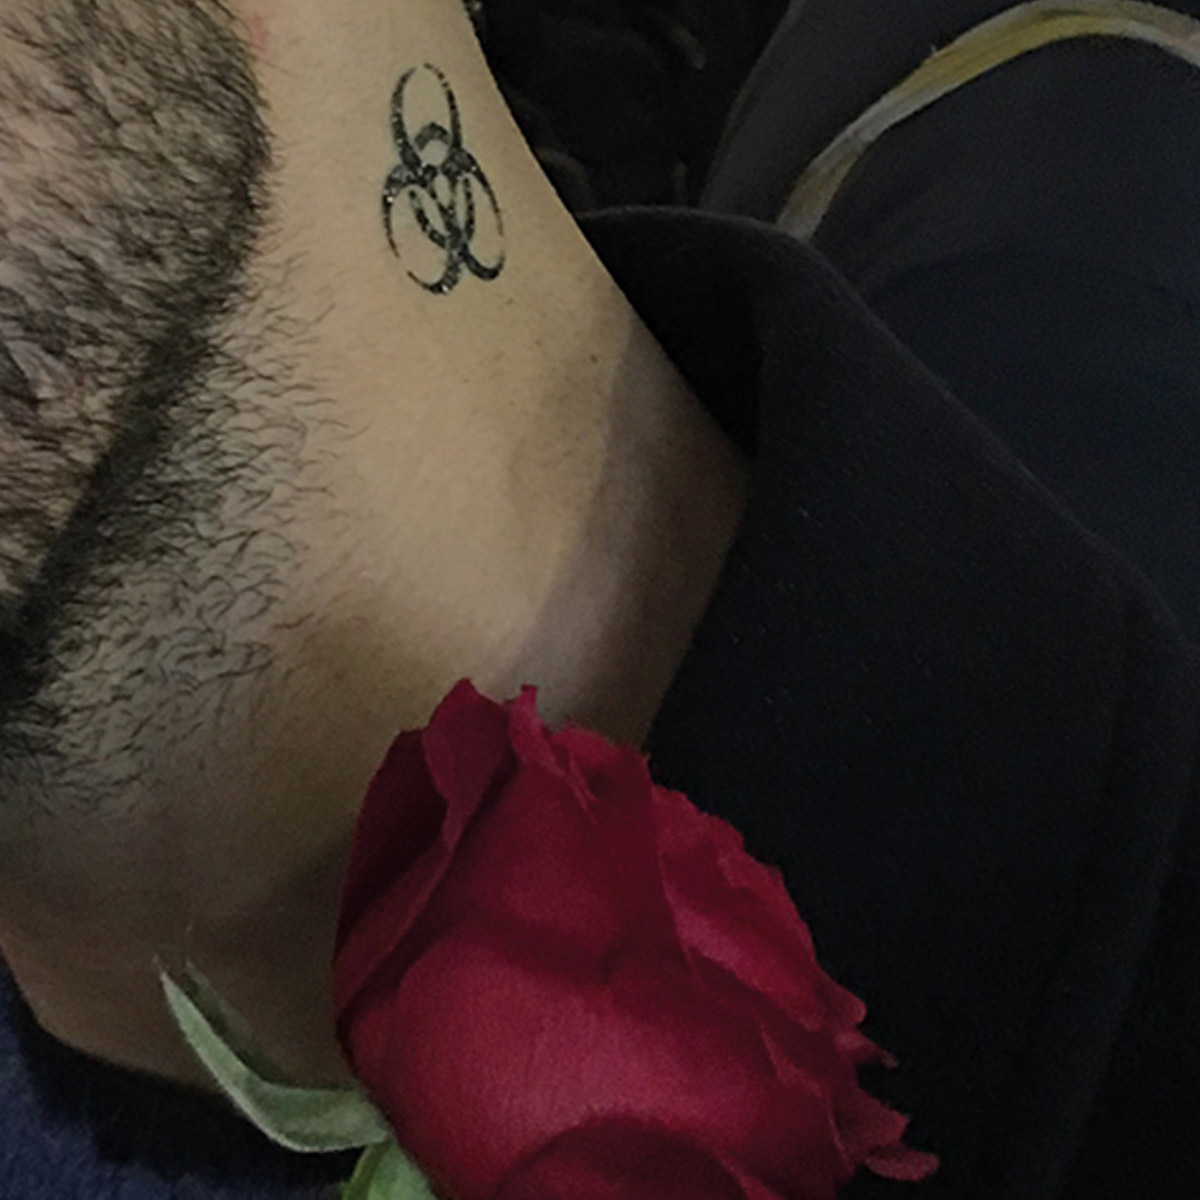 Can Küçük, Temporary tattoo, 2018, (The artist applied his tattoo work on his neck ). Courtesy of the artist.